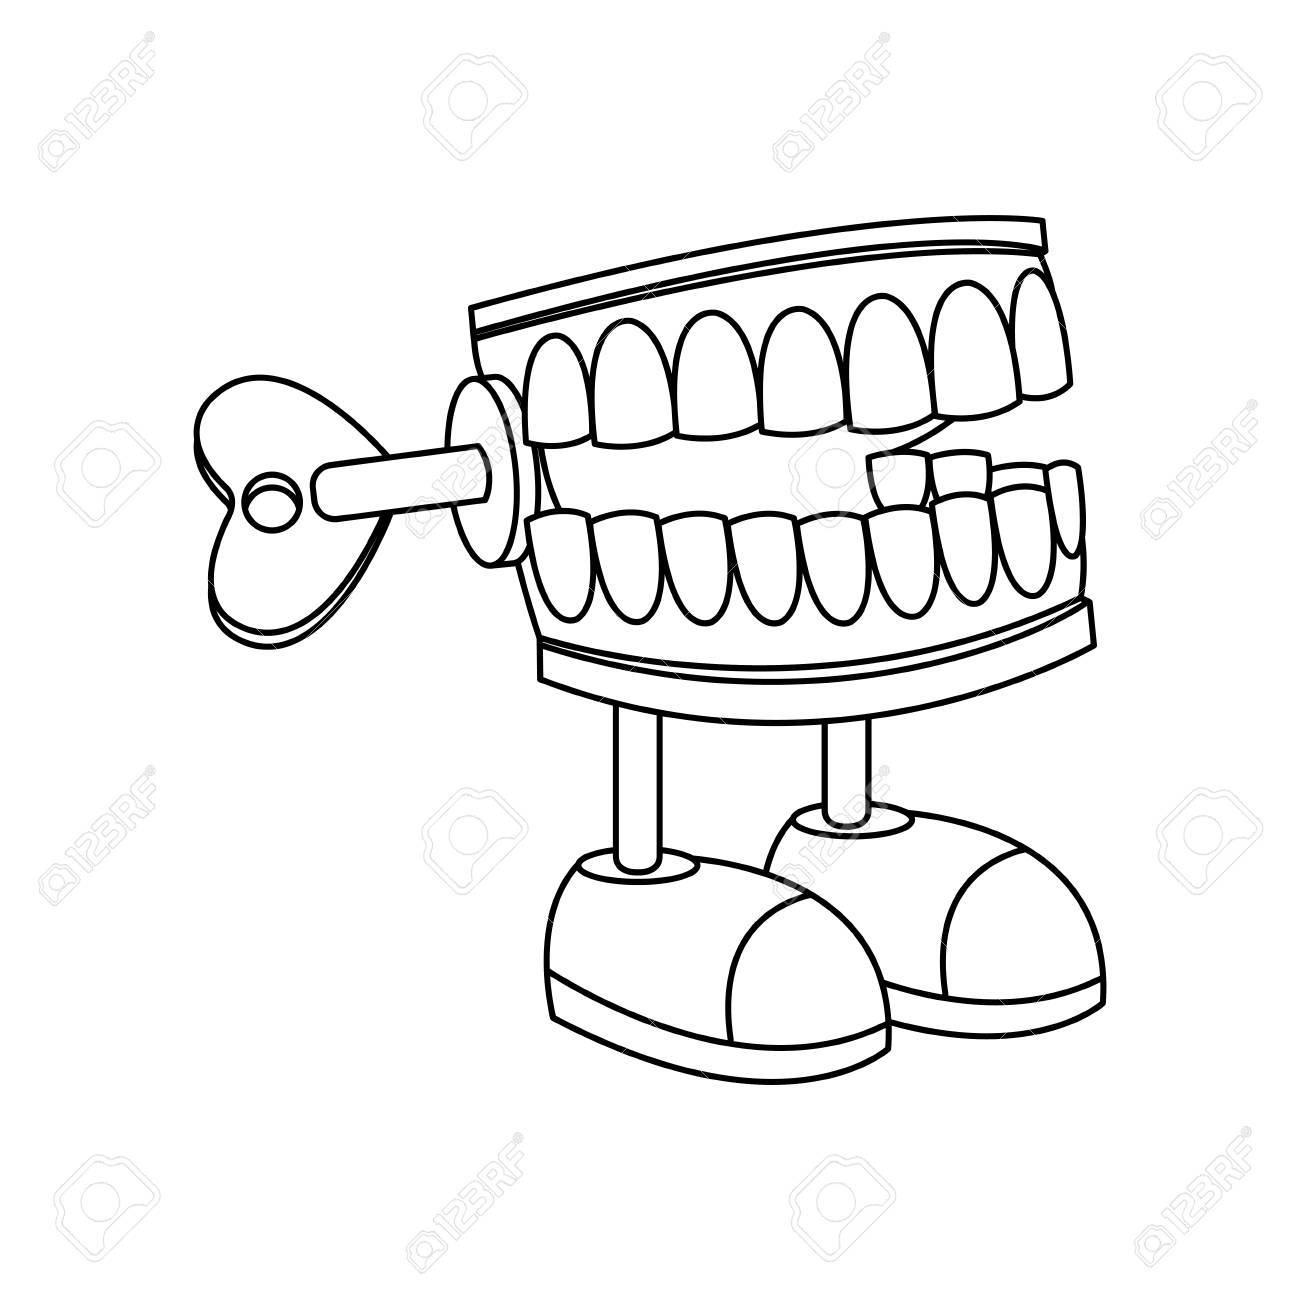 Chattering Teeth on White Background Stock Photo - Alamy